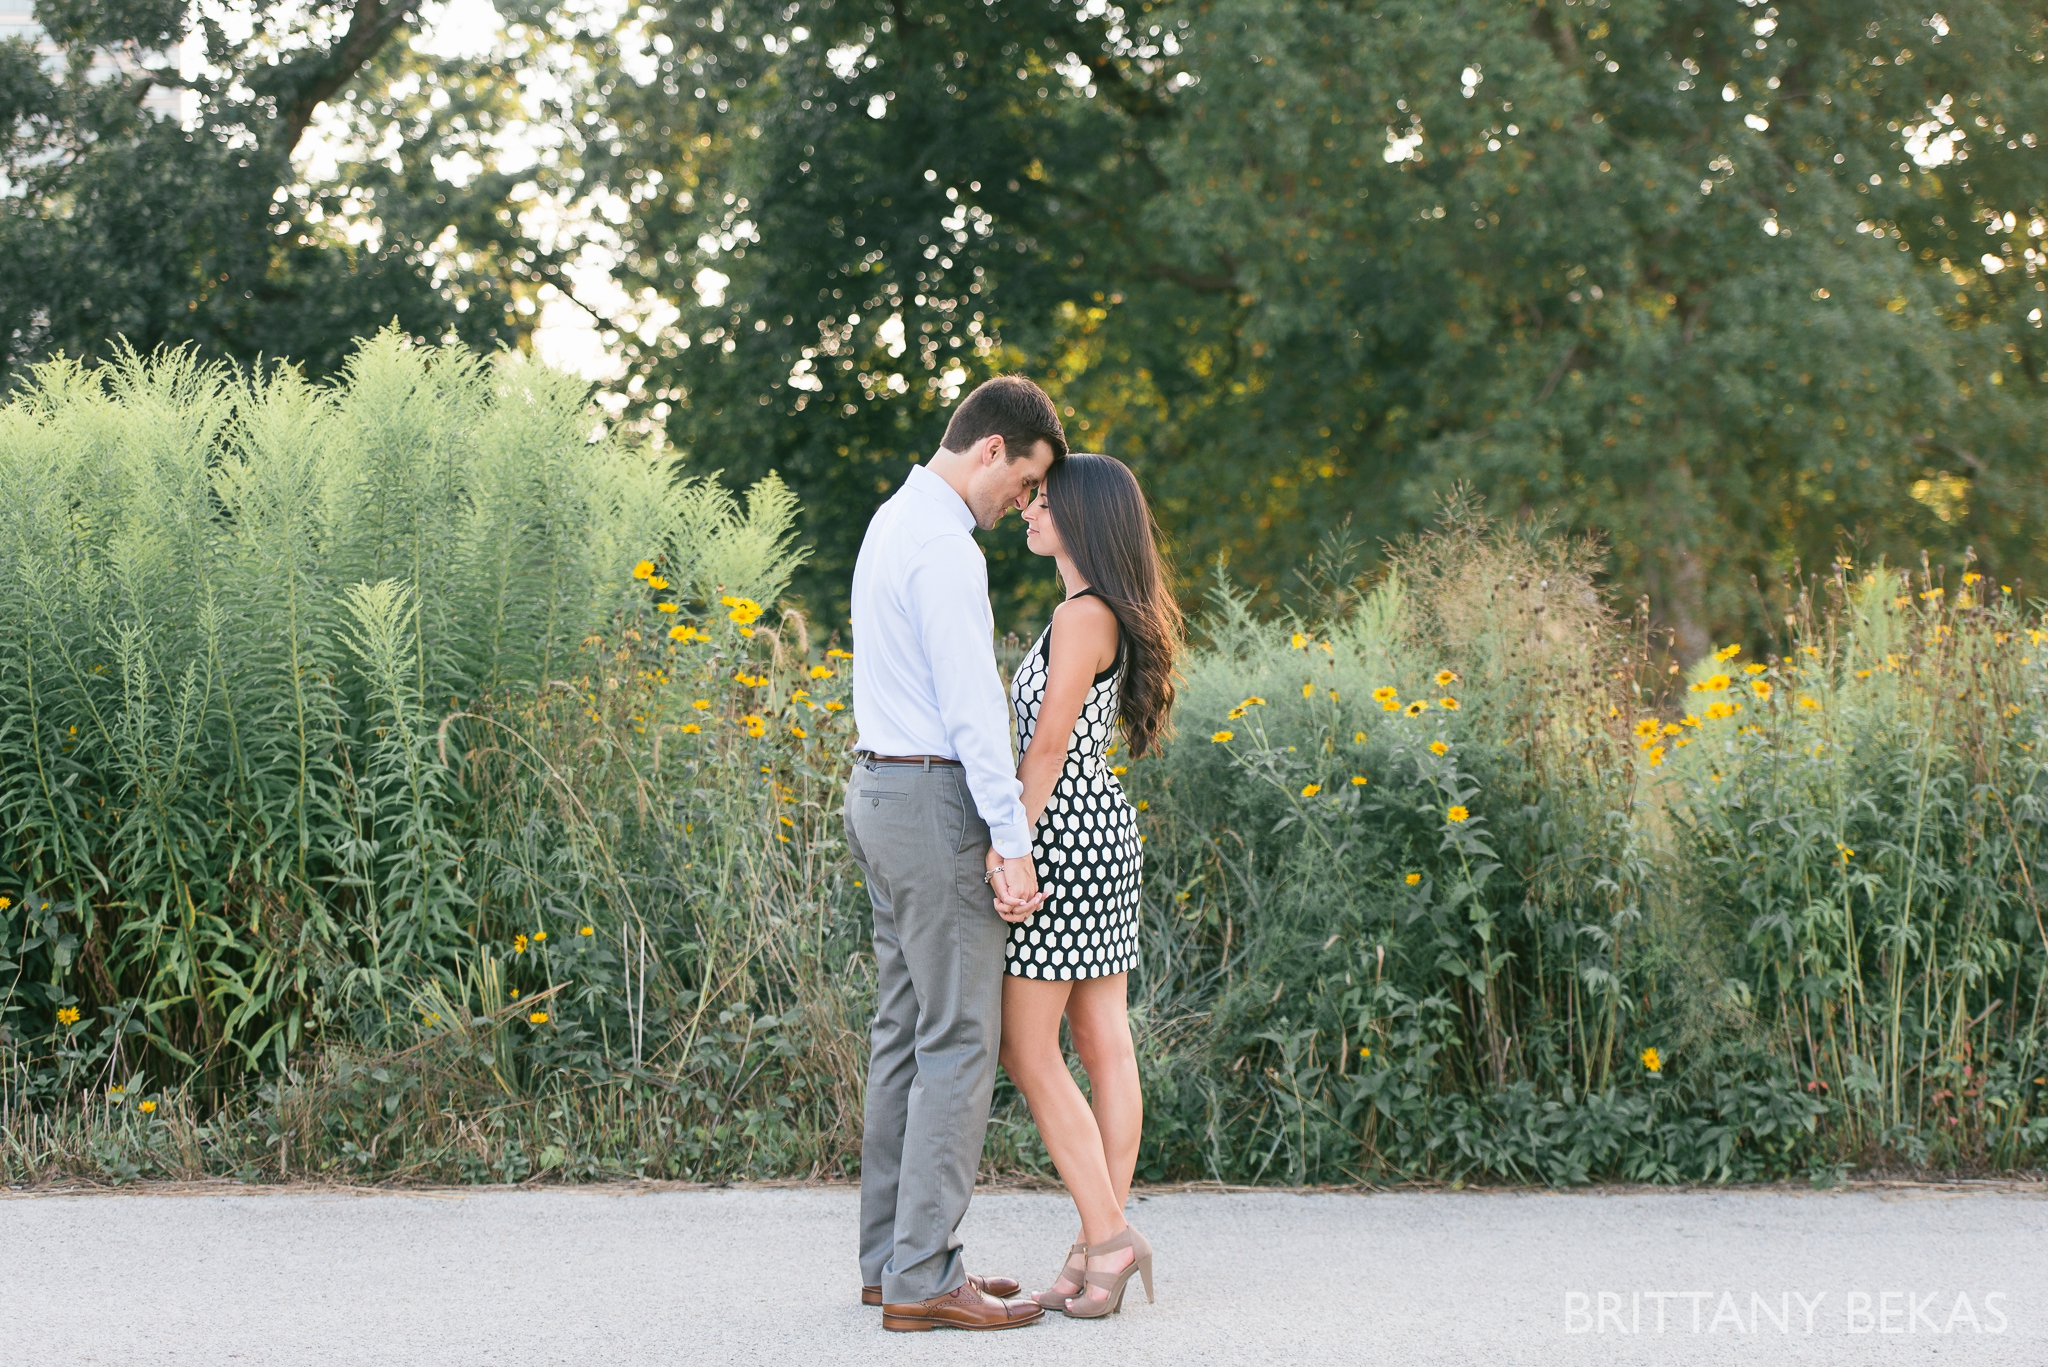 chicago-engagement-photos-lincoln-park-brittany-bekas-photography_0011